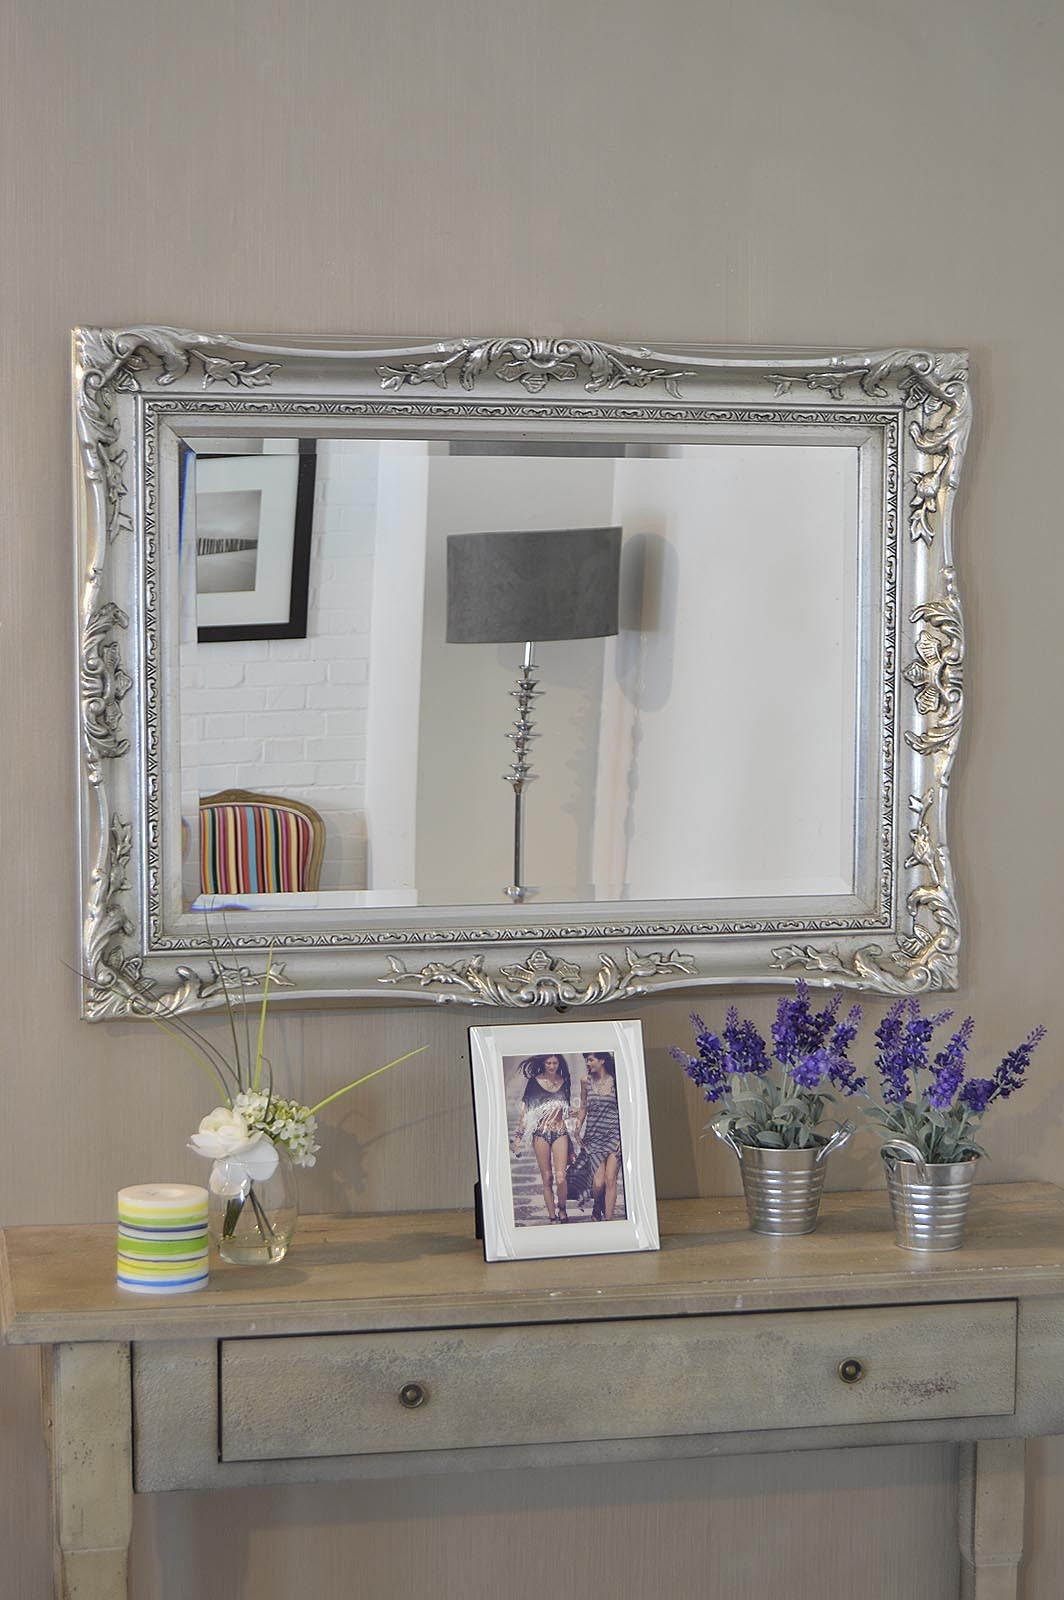 Big Wall Mirrors 15+ large ornate wall mirrors | mirror ideas